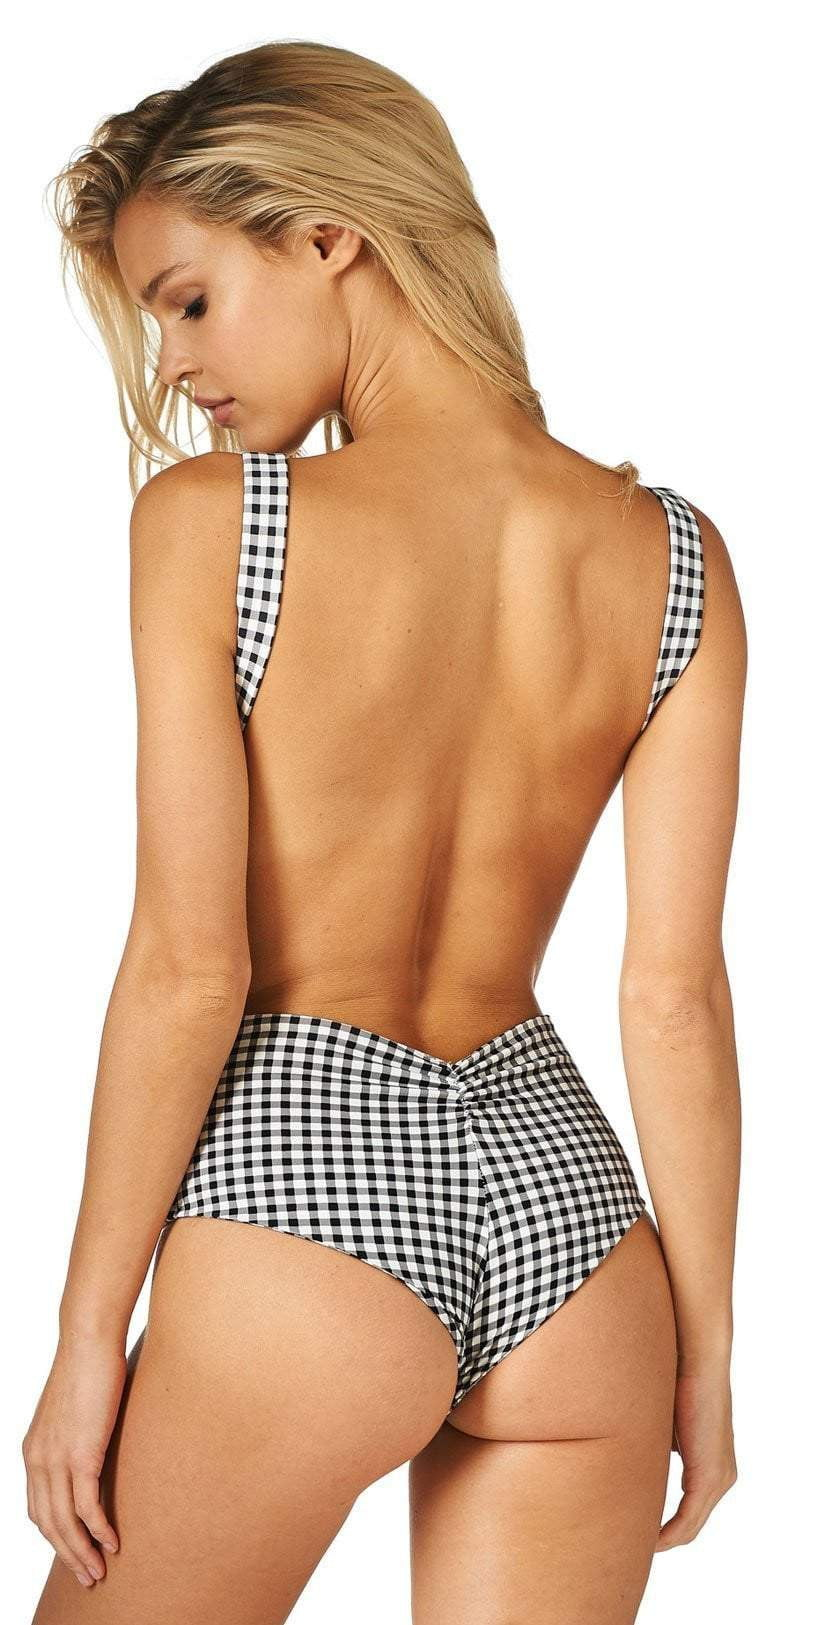 Montce Bea One Piece in Gingham: